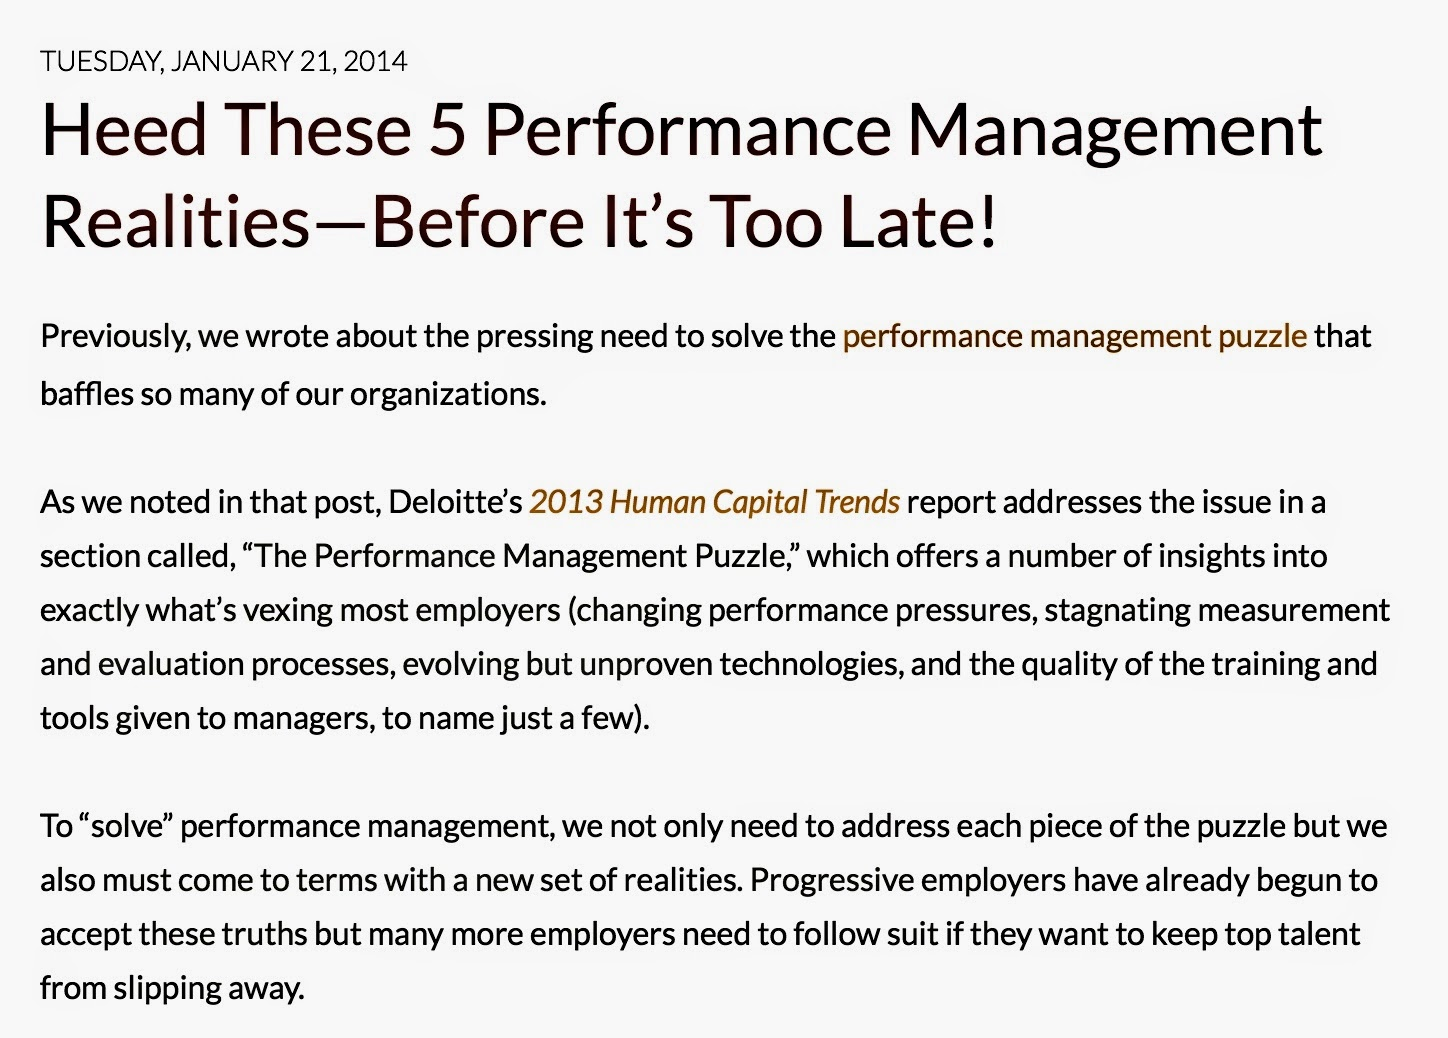 http://blog.reviewsnap.com/2014/01/heed-these-5-performance-management.html